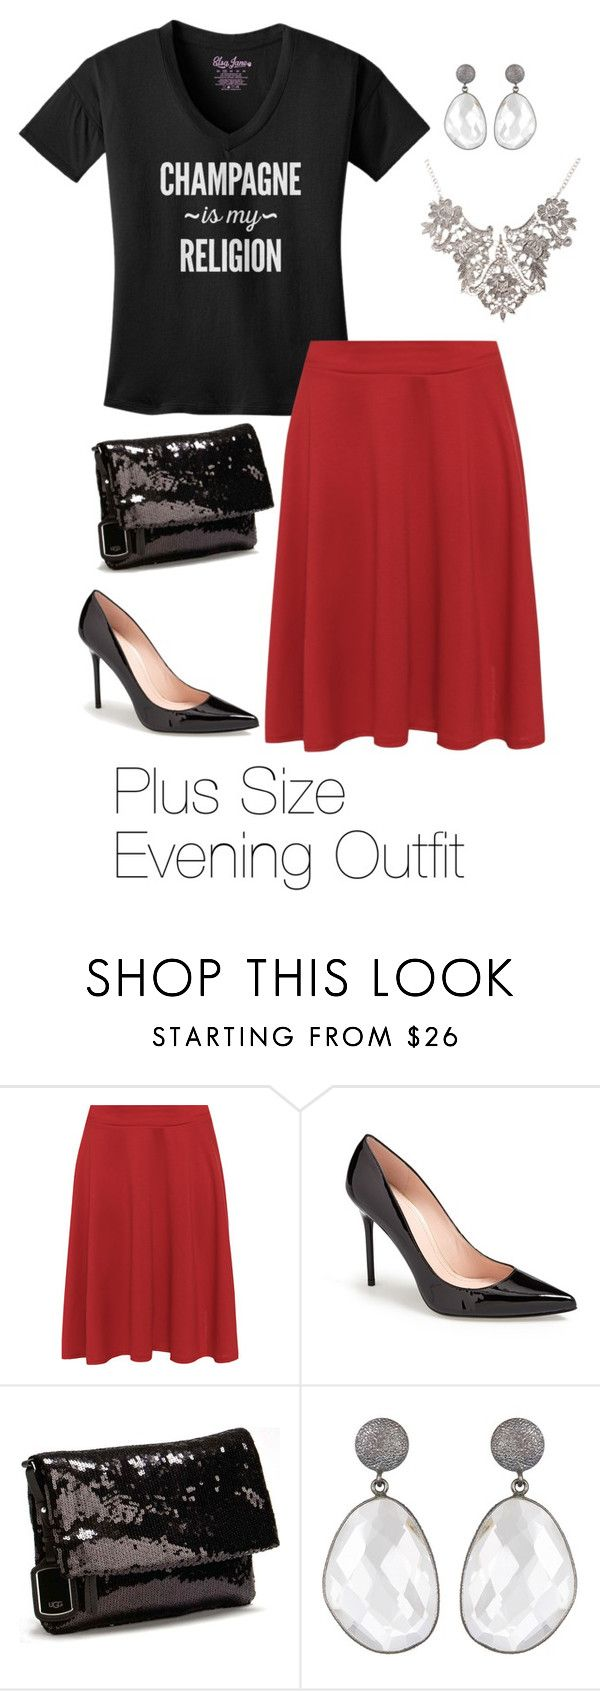 """""""Plus Size Evening Outfit"""" by elsajanedotcom on Polyvore featuring WearAll, Stuart Weitzman, UGG Australia and plussize"""